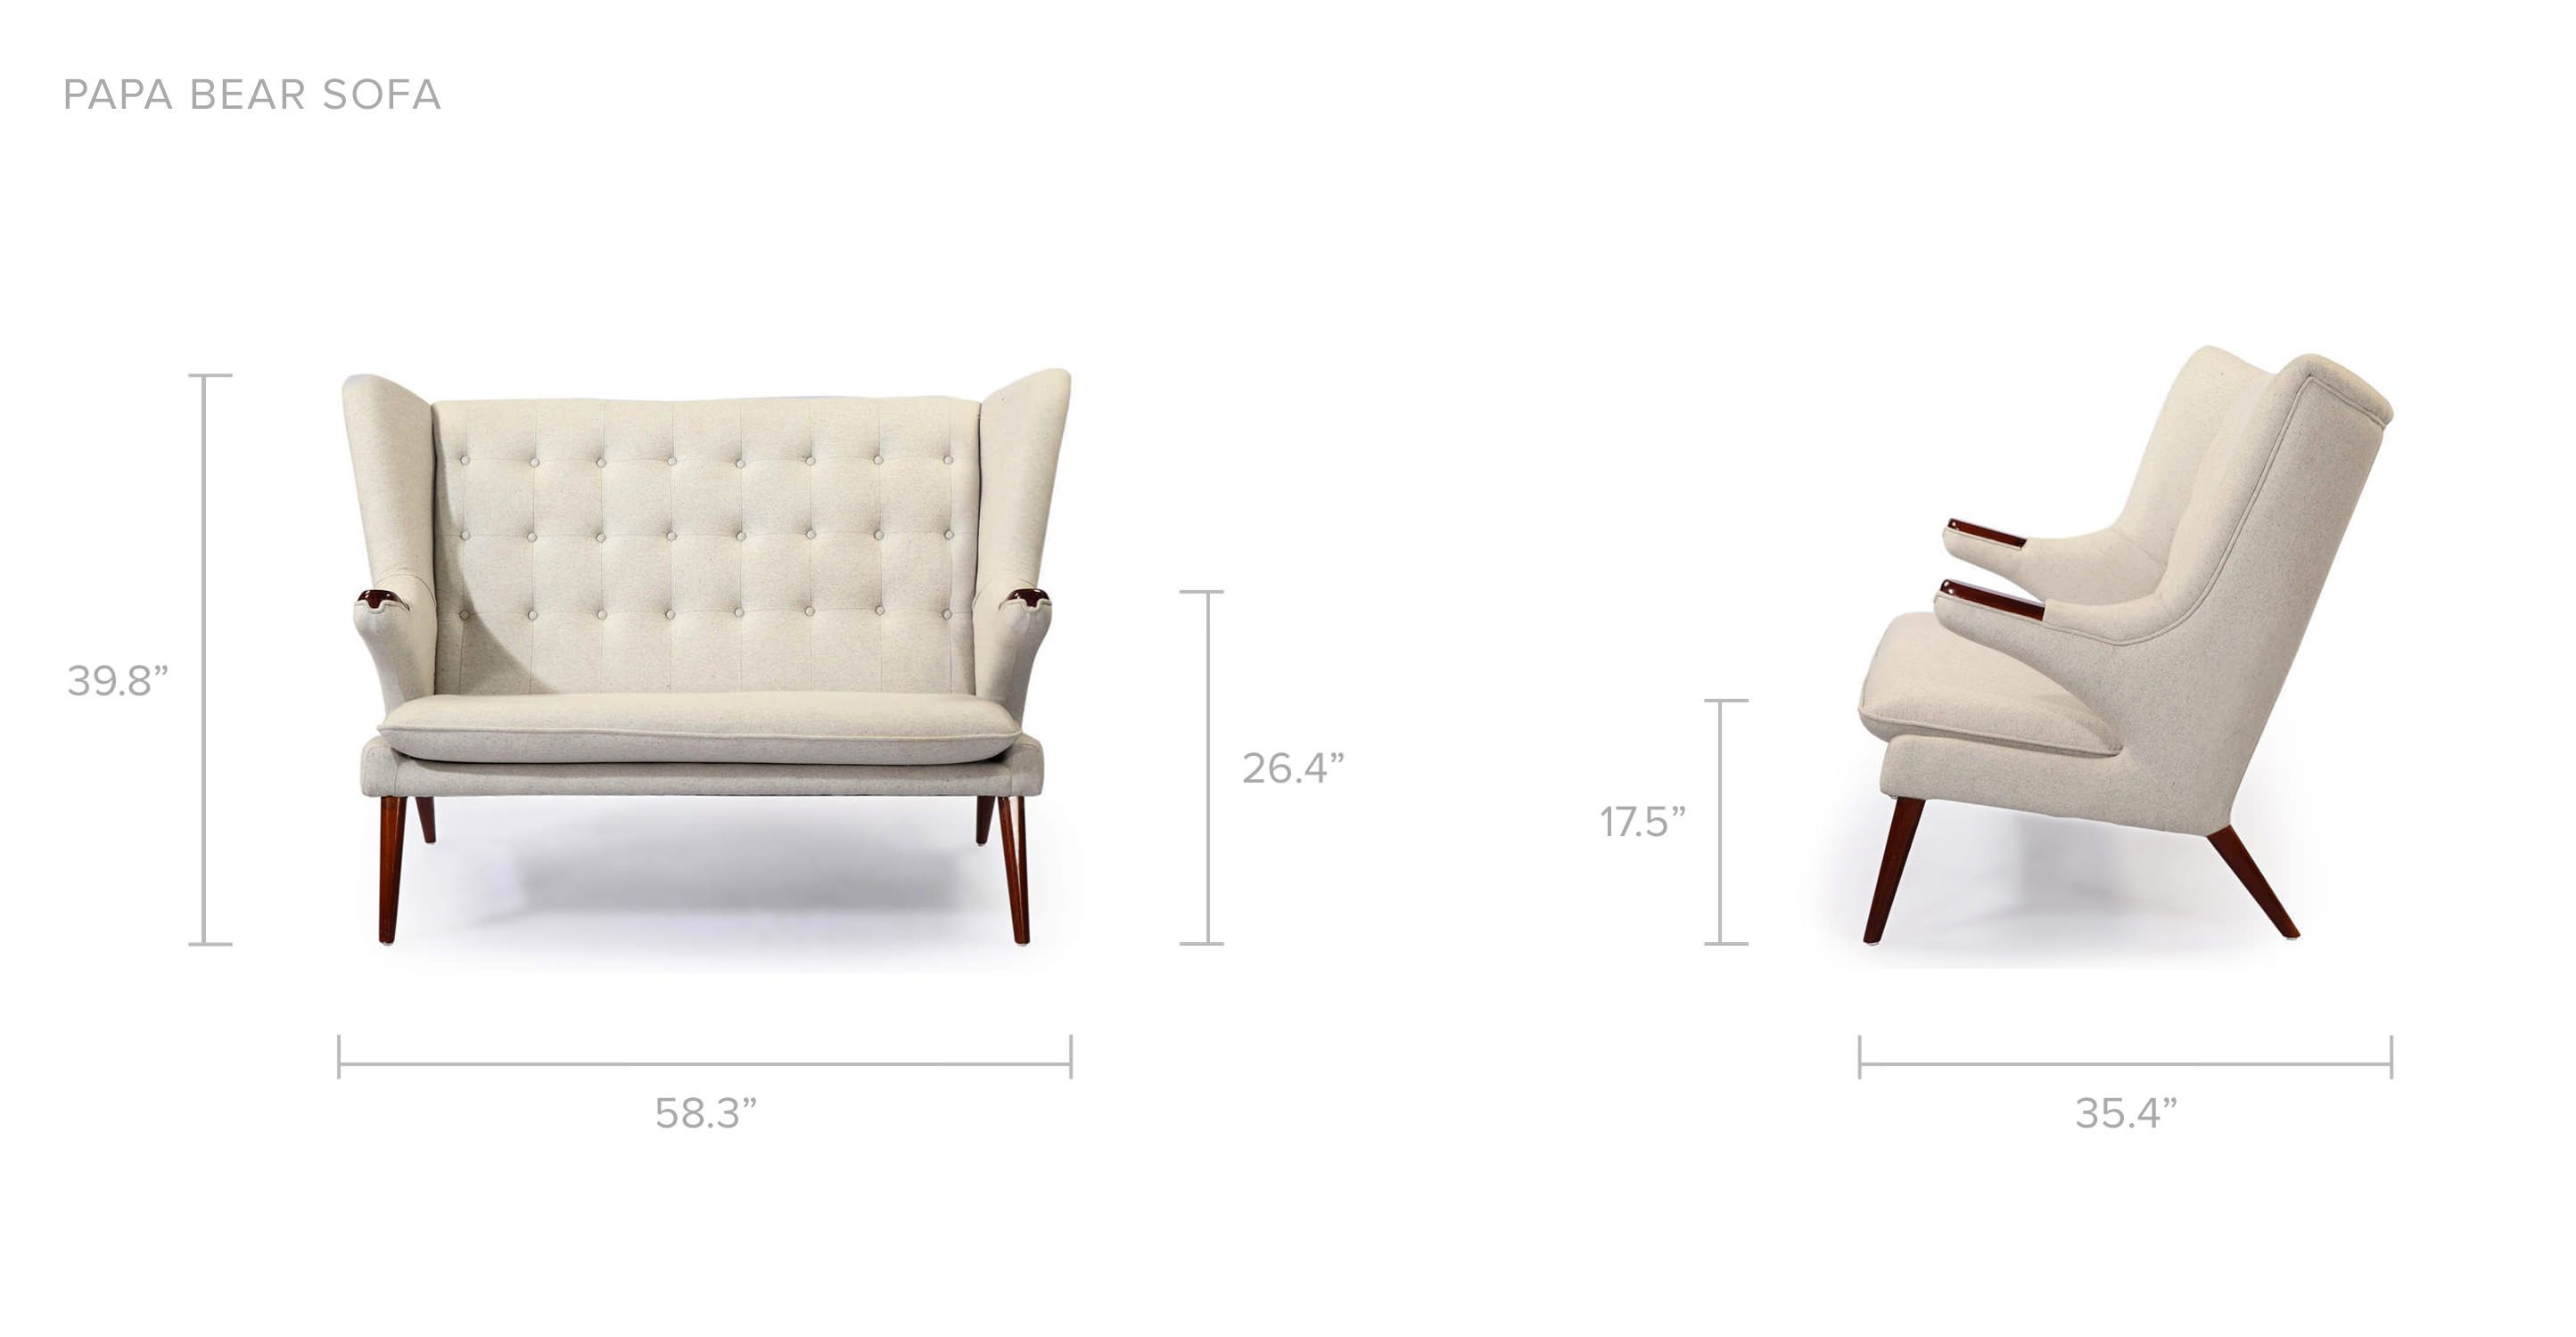 shadow loveseat elegant products love seat leg chair chesterfield loaf dixie edit